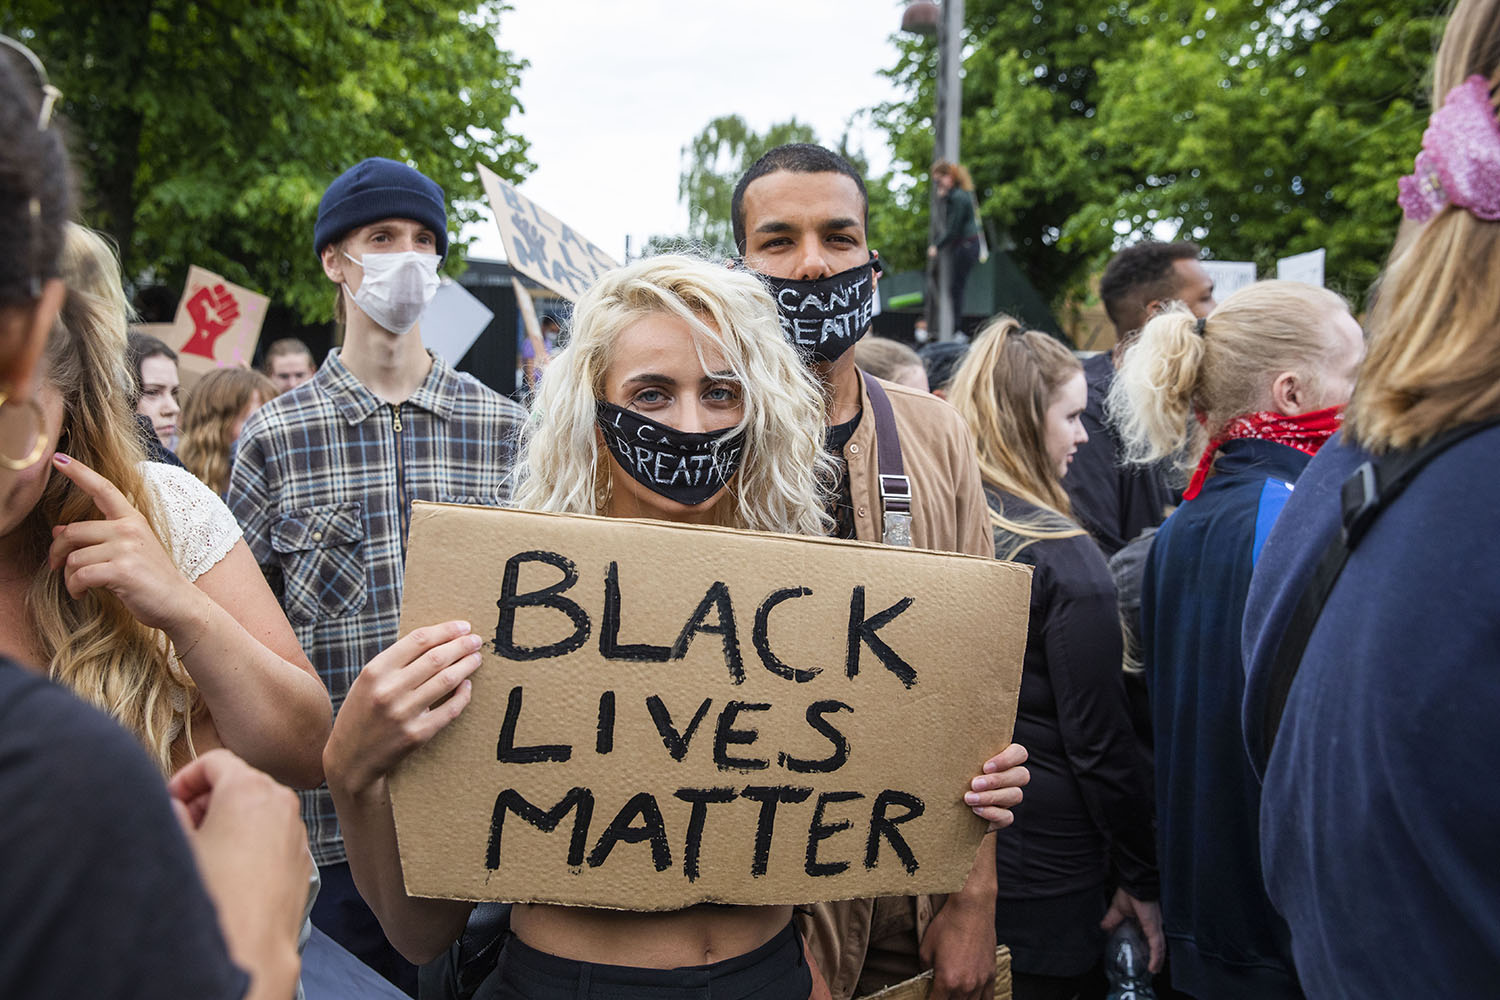 BlackLivesMatterDK_DEMO_070620_HelenaLundquist_mindre_2